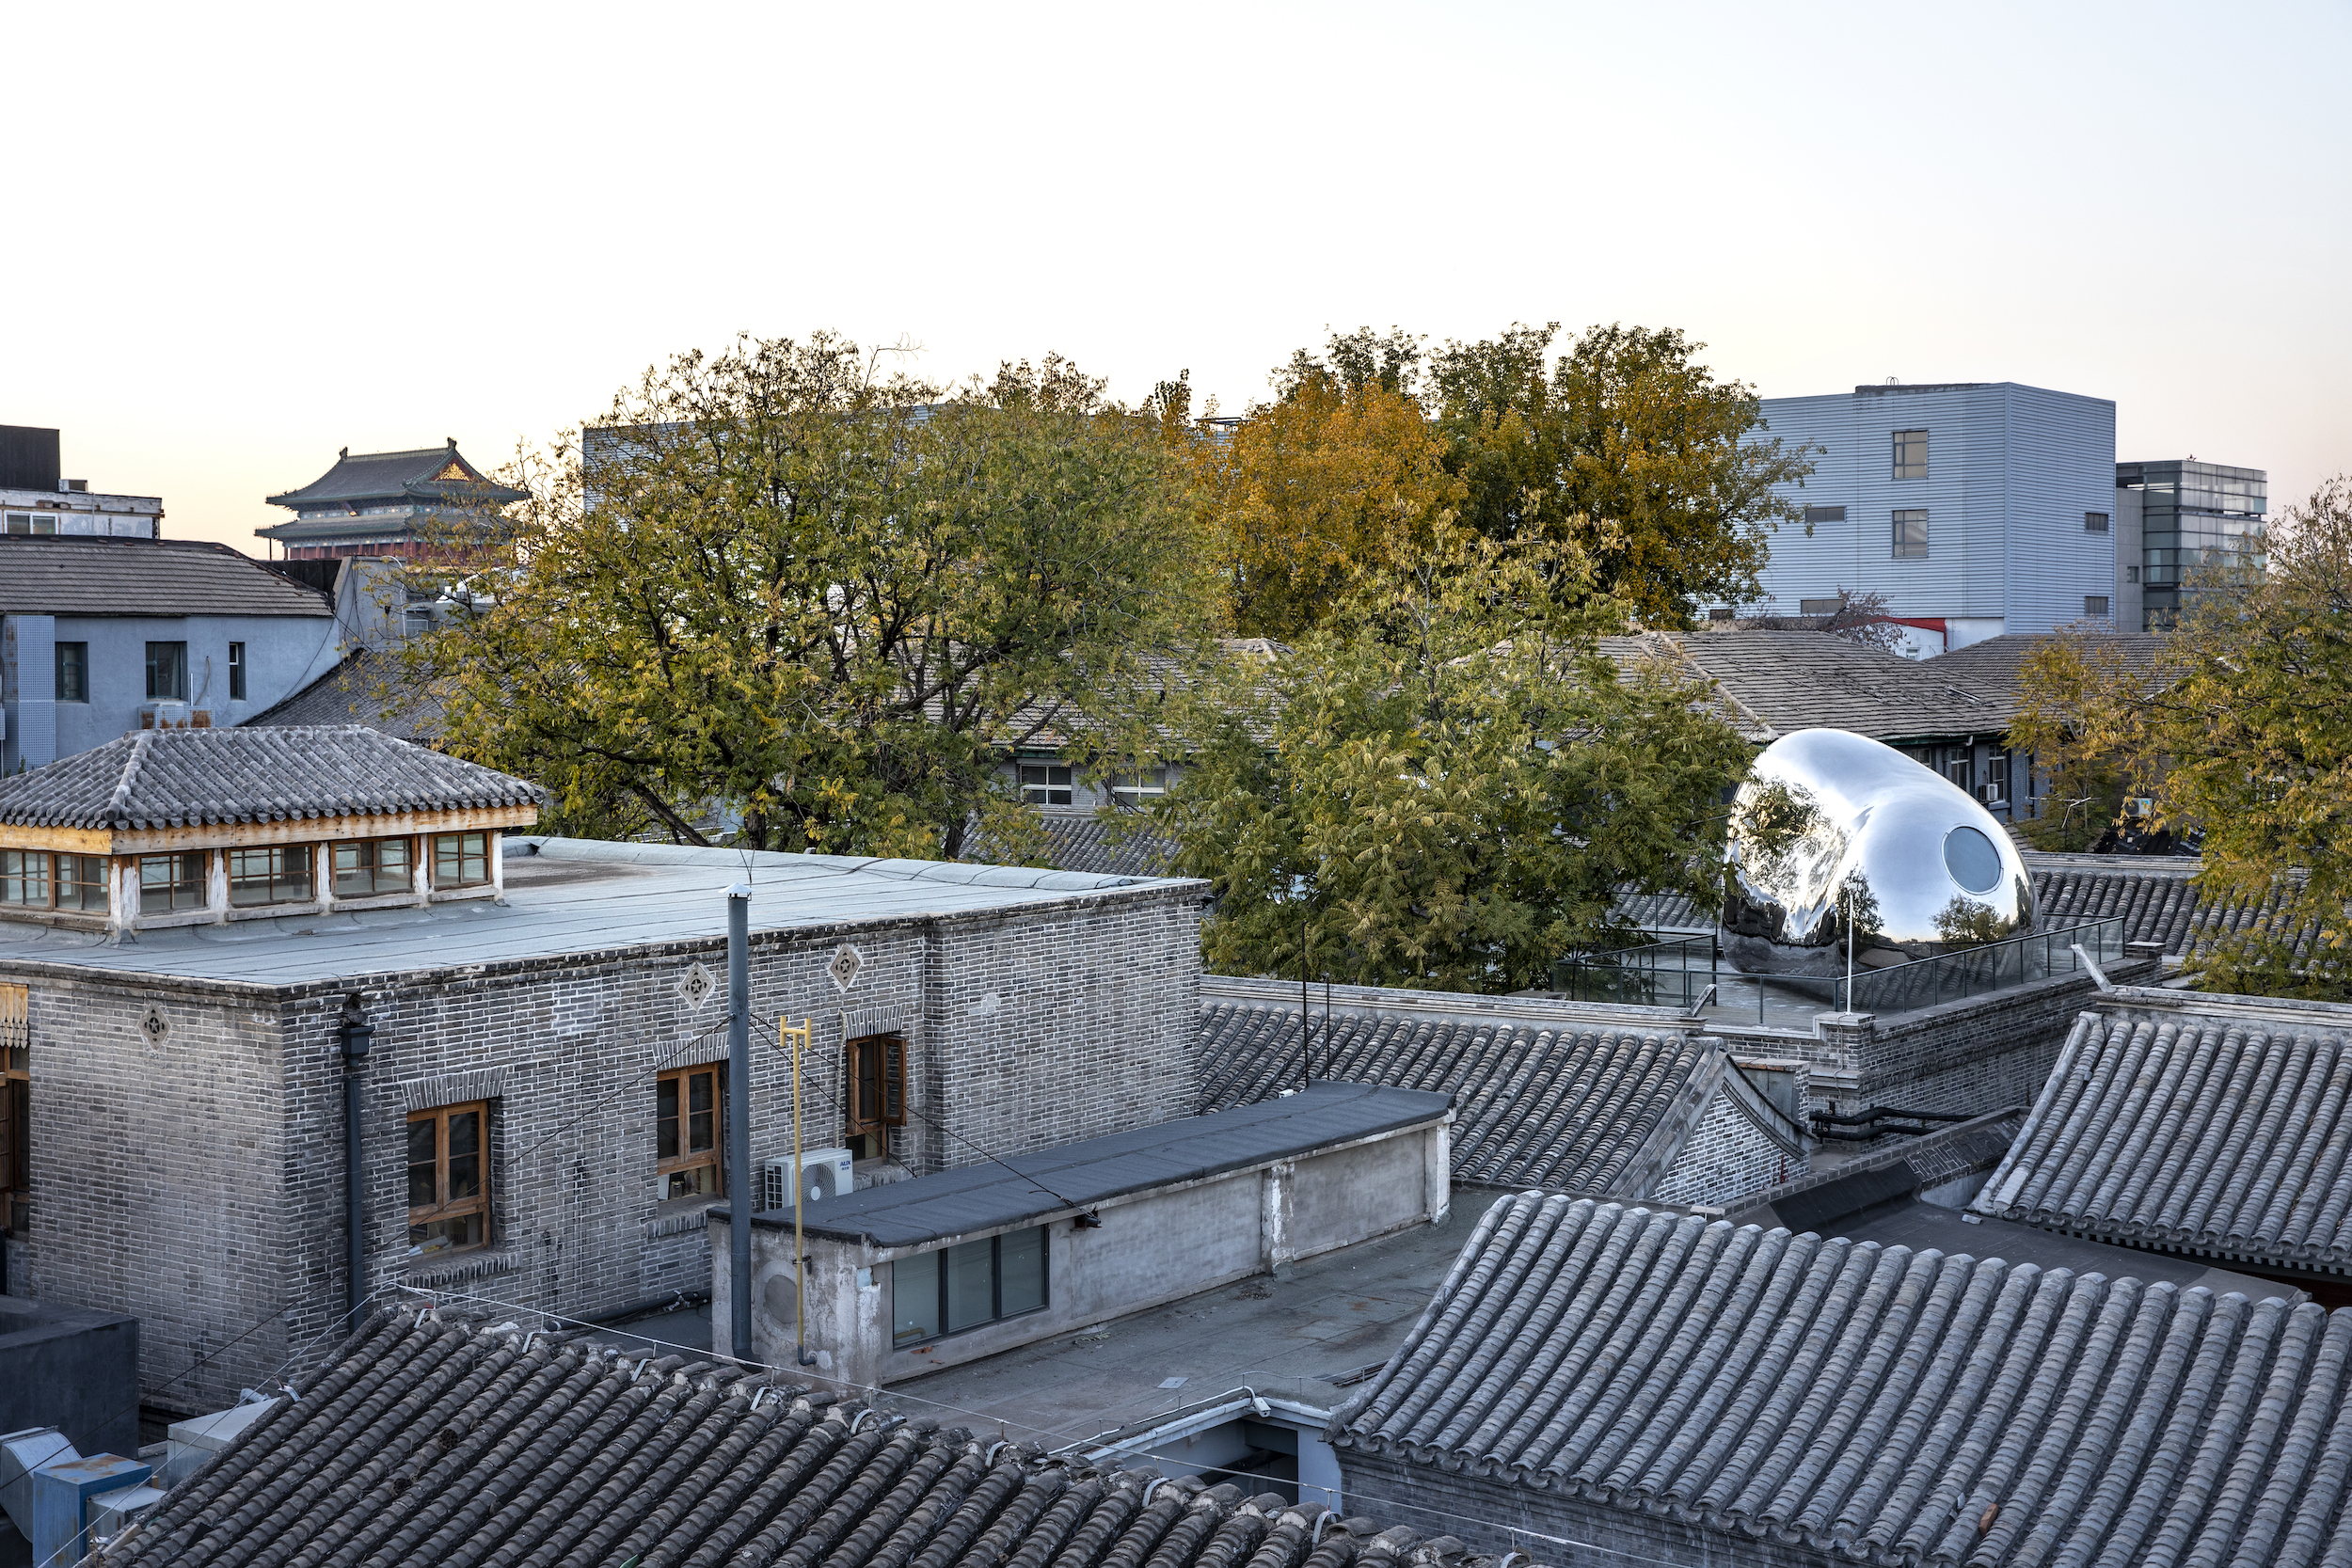 The scheme by MAD conserves and restores the authentic architectural aesthetic of the courtyard building to its original glory | Ma Yansong | STIRworld